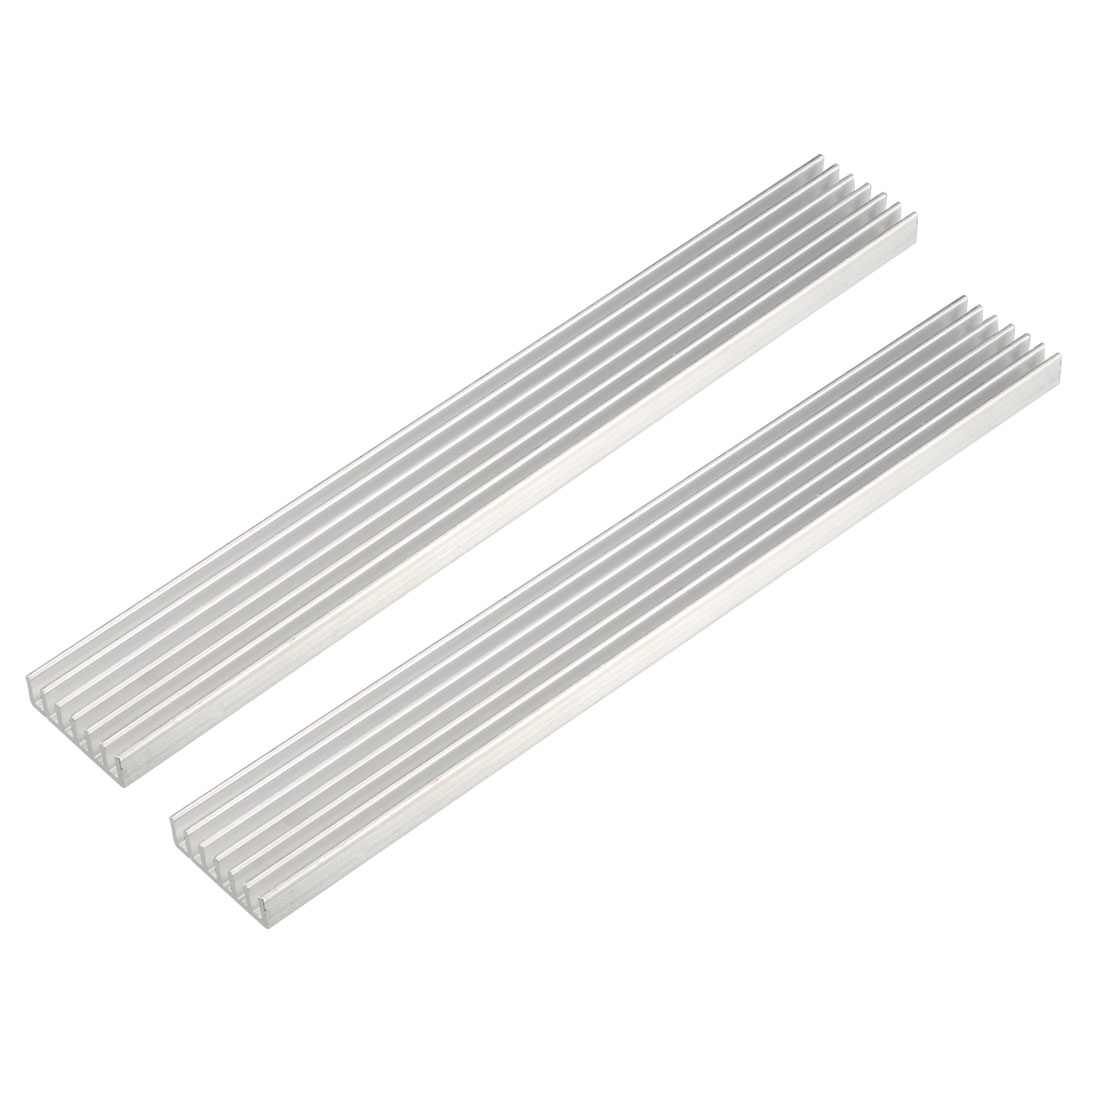 Aluminum Heatsink Cooler Circuit Board Cooling Silver Tone 150mmx20mmx6mm 2Pcs